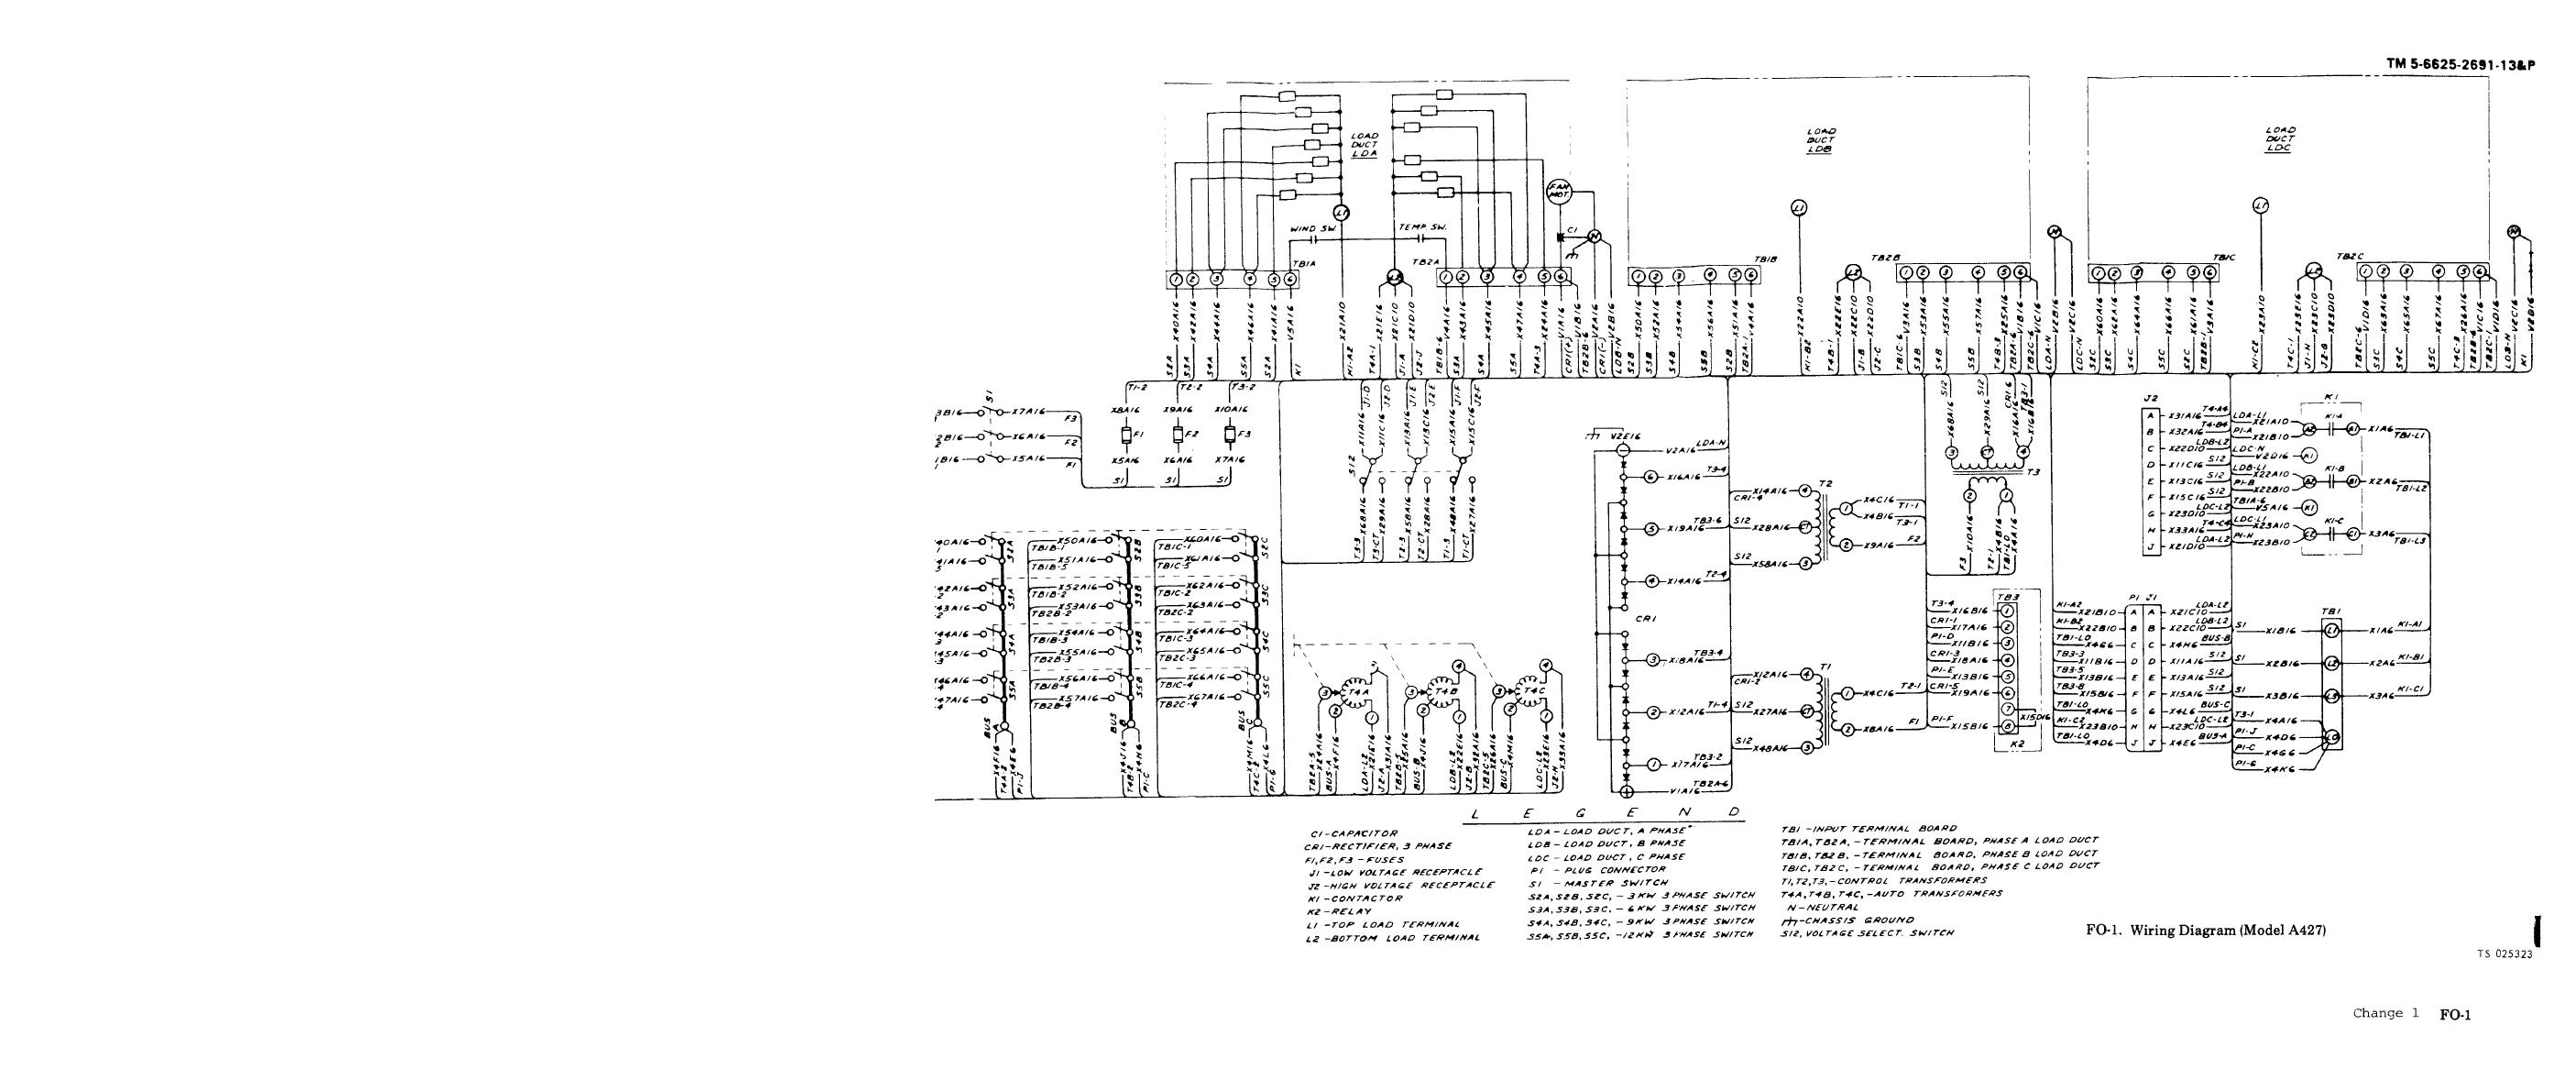 FO-2 Wiring diagram (Model A427B)